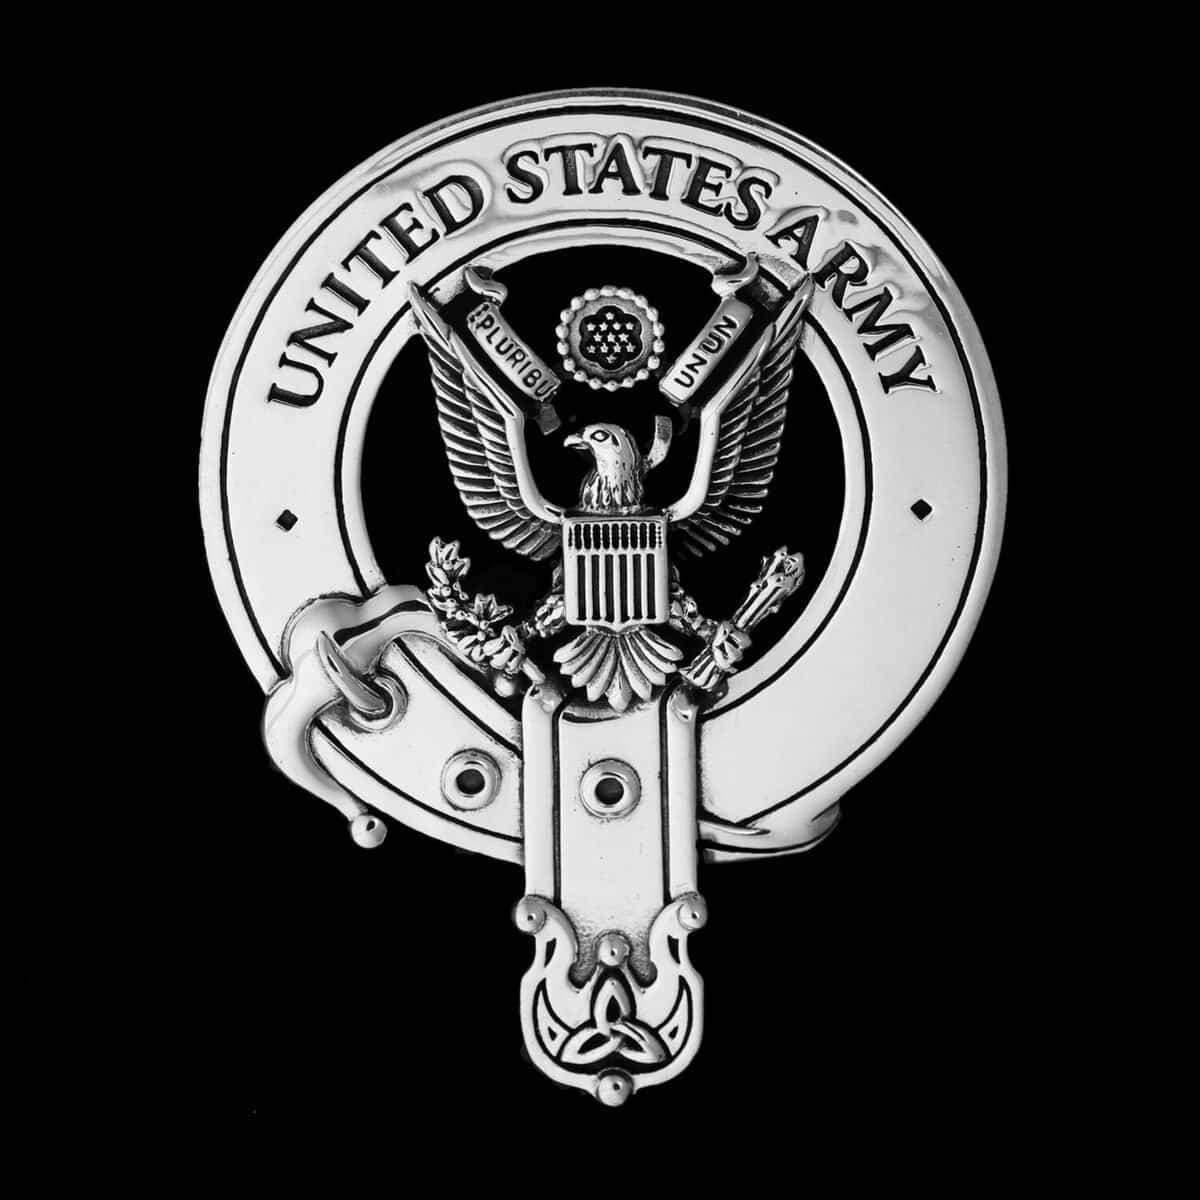 US ARMY Belted BagPipers Crest Badge Great Seal of the United States 92.5 Sterling Silver ©celticjackalope.com